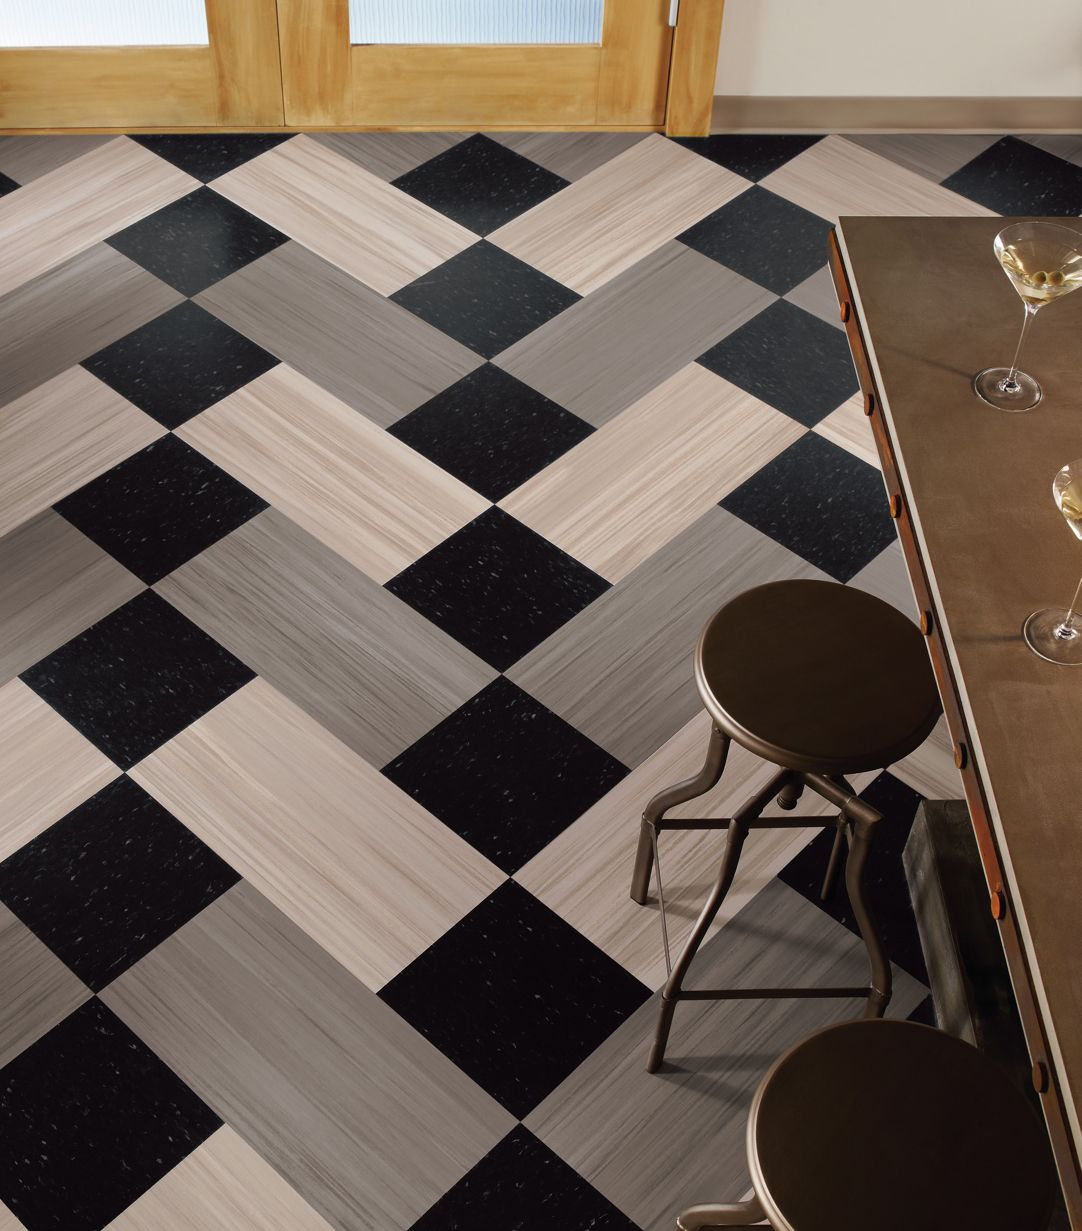 commercial linoleum flooring I'd take out the black and